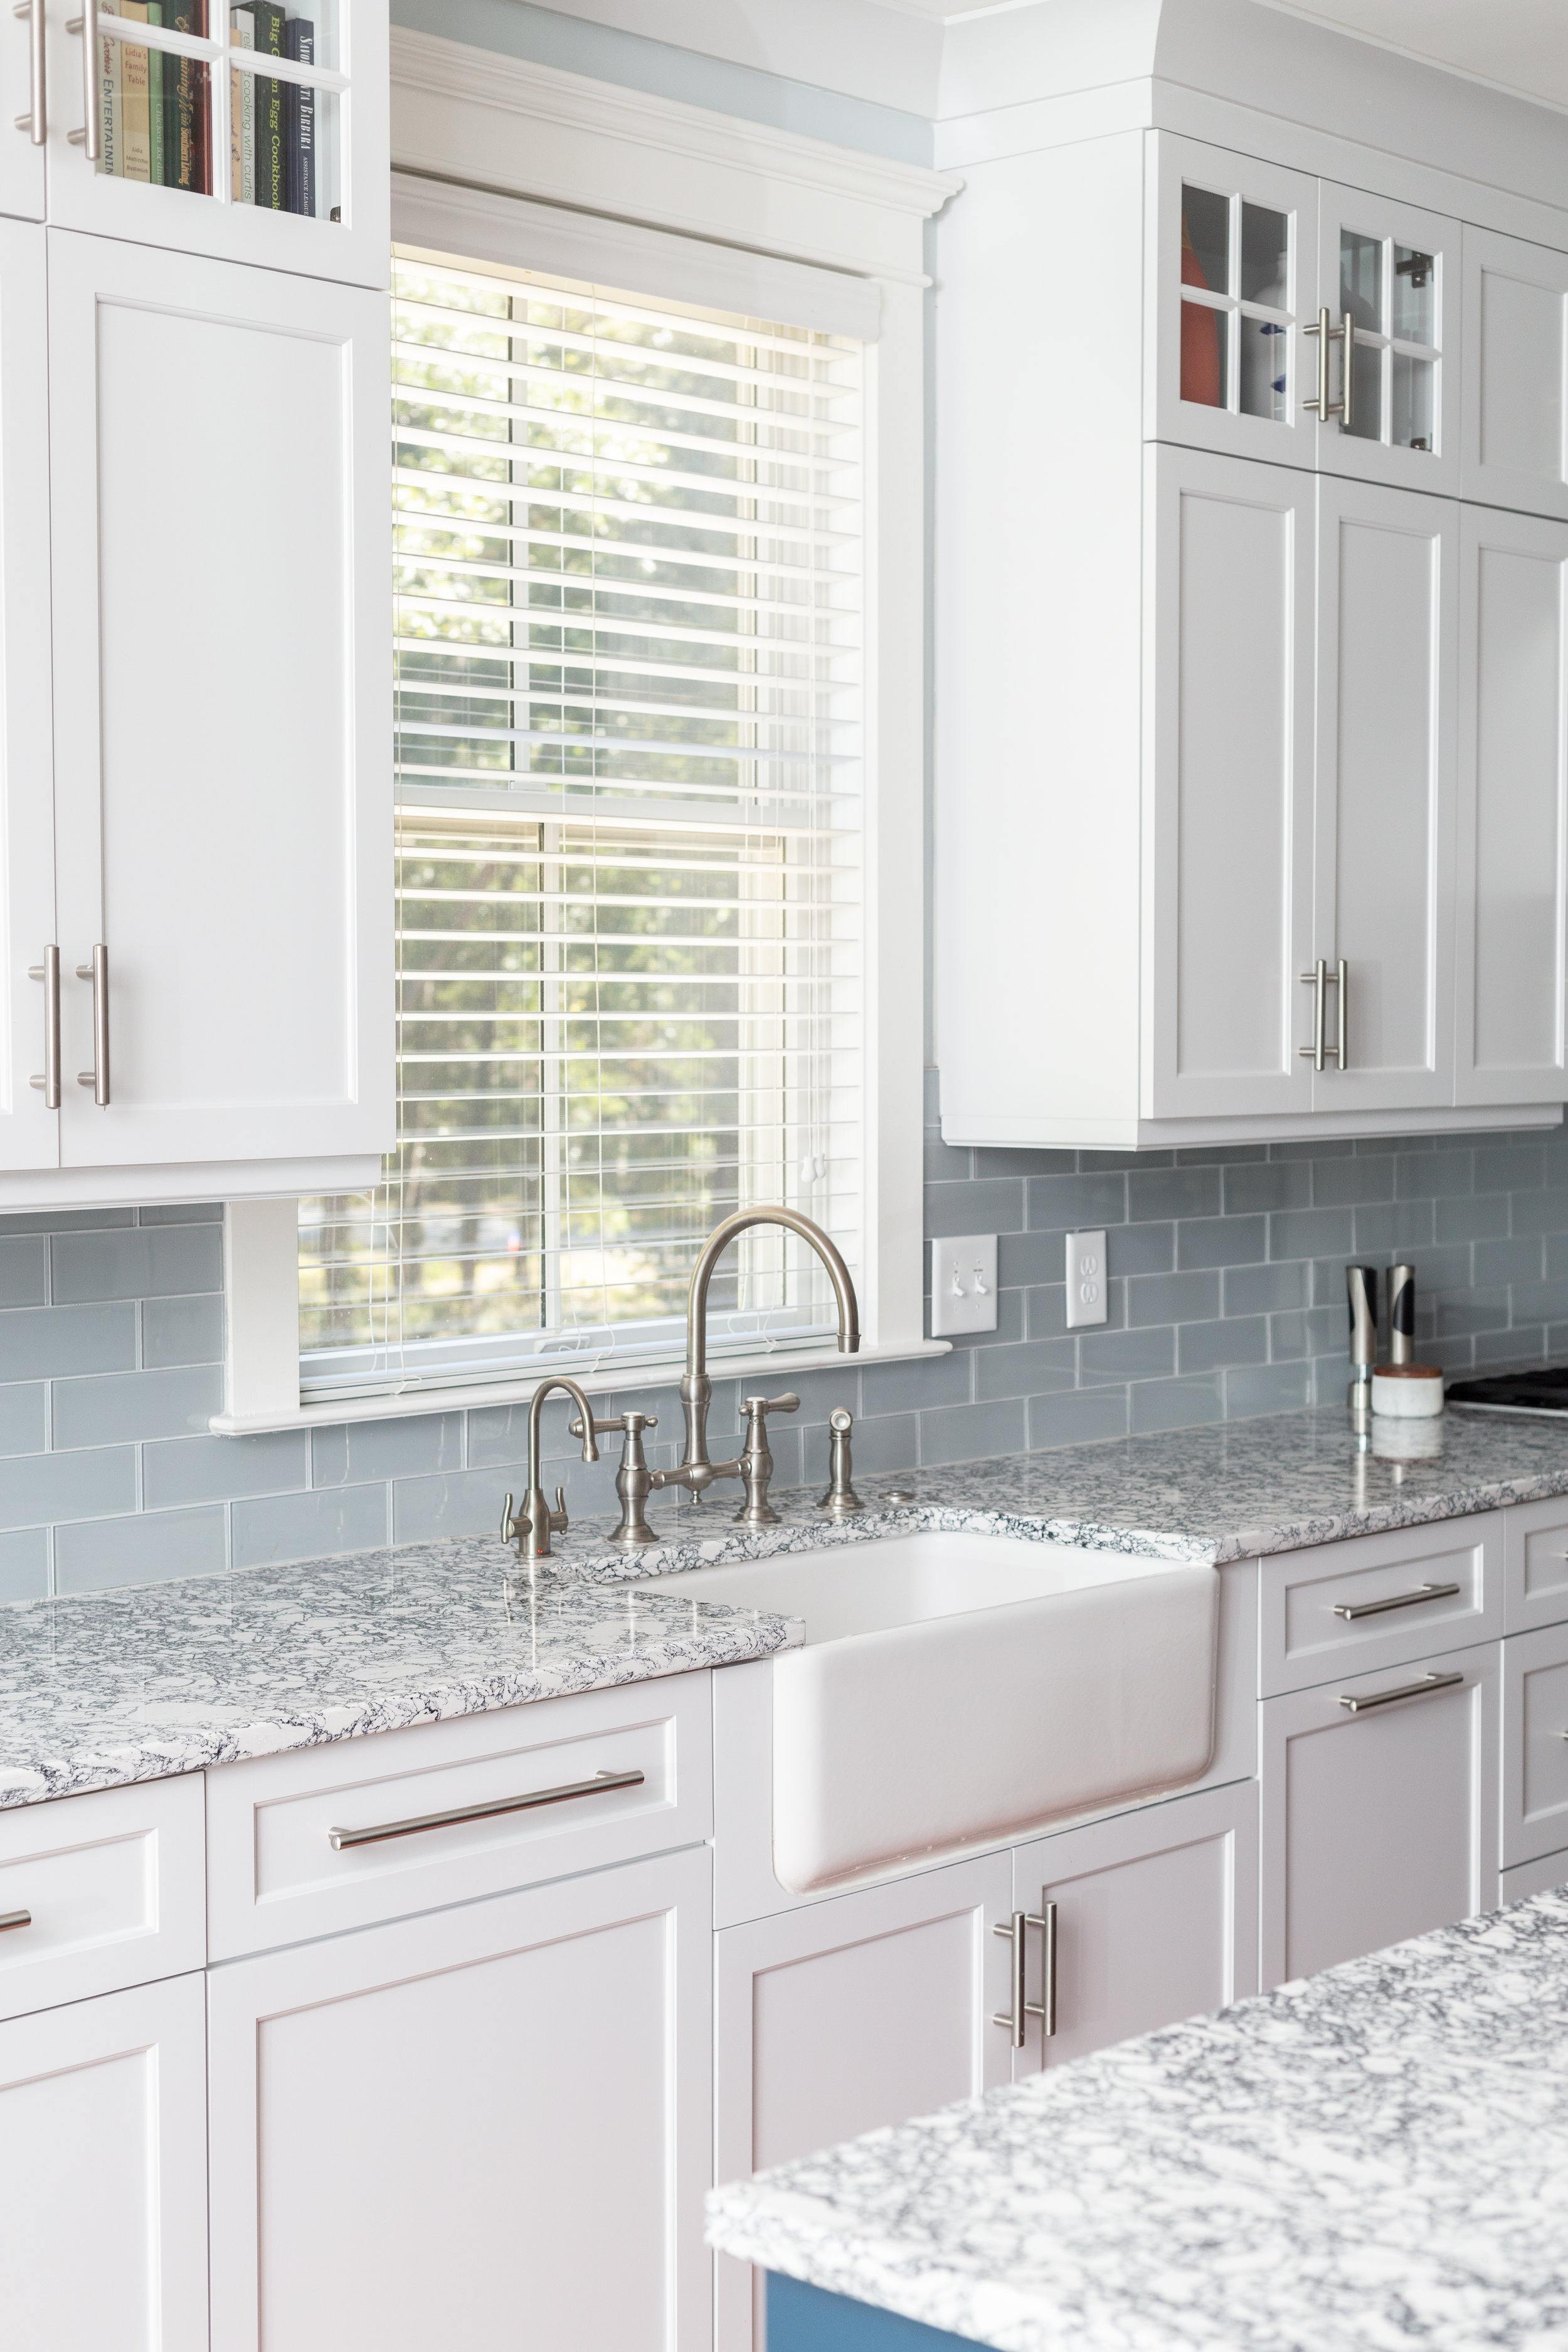 Southeast Kitchens - Serving Charleston for over 30 years ...